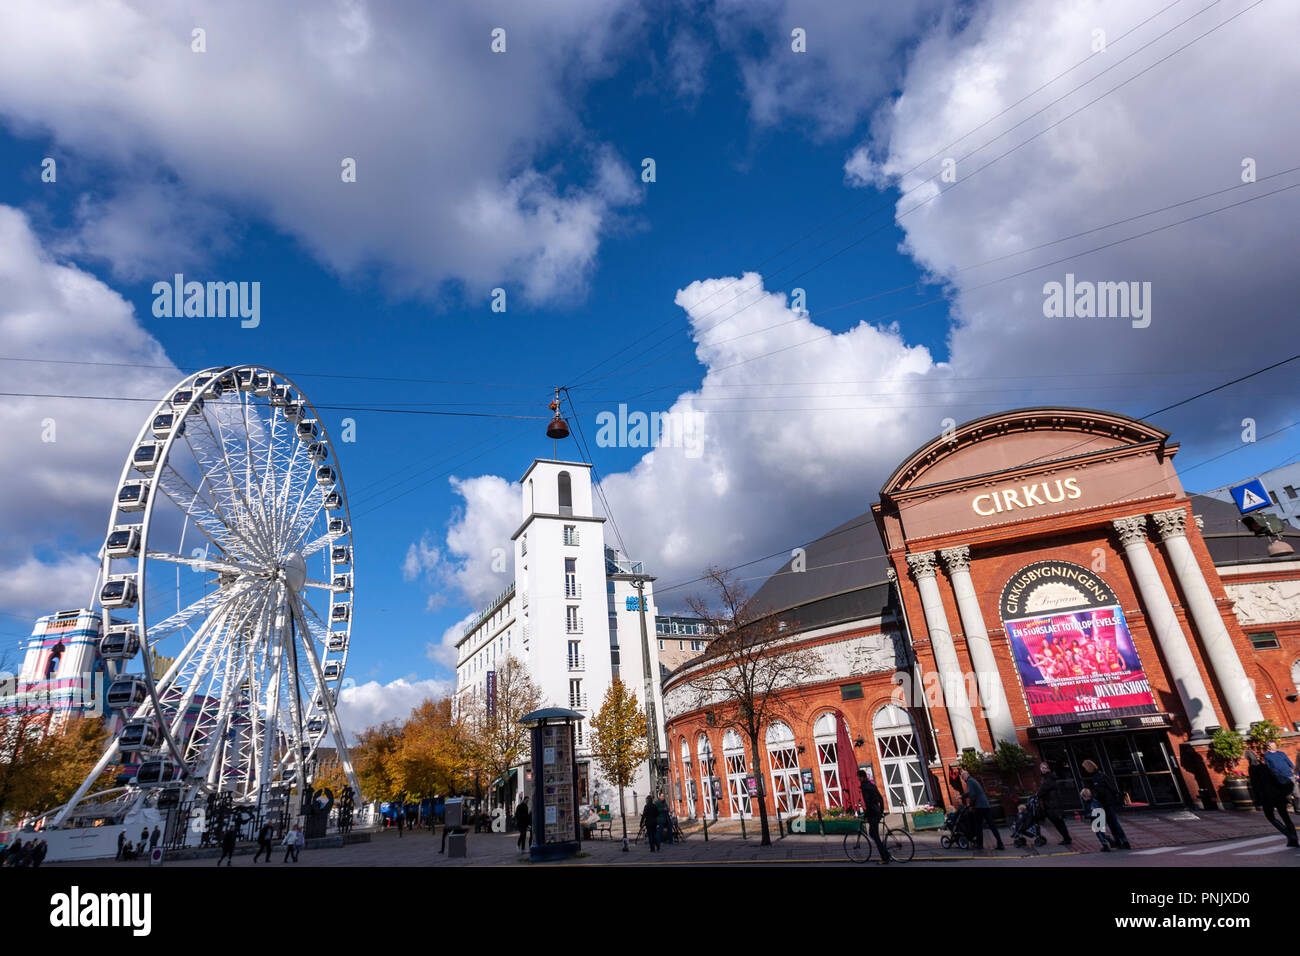 Circus Building and the Ferris wheel in Tivoli, Copenhagen, Denmark Stock Photo